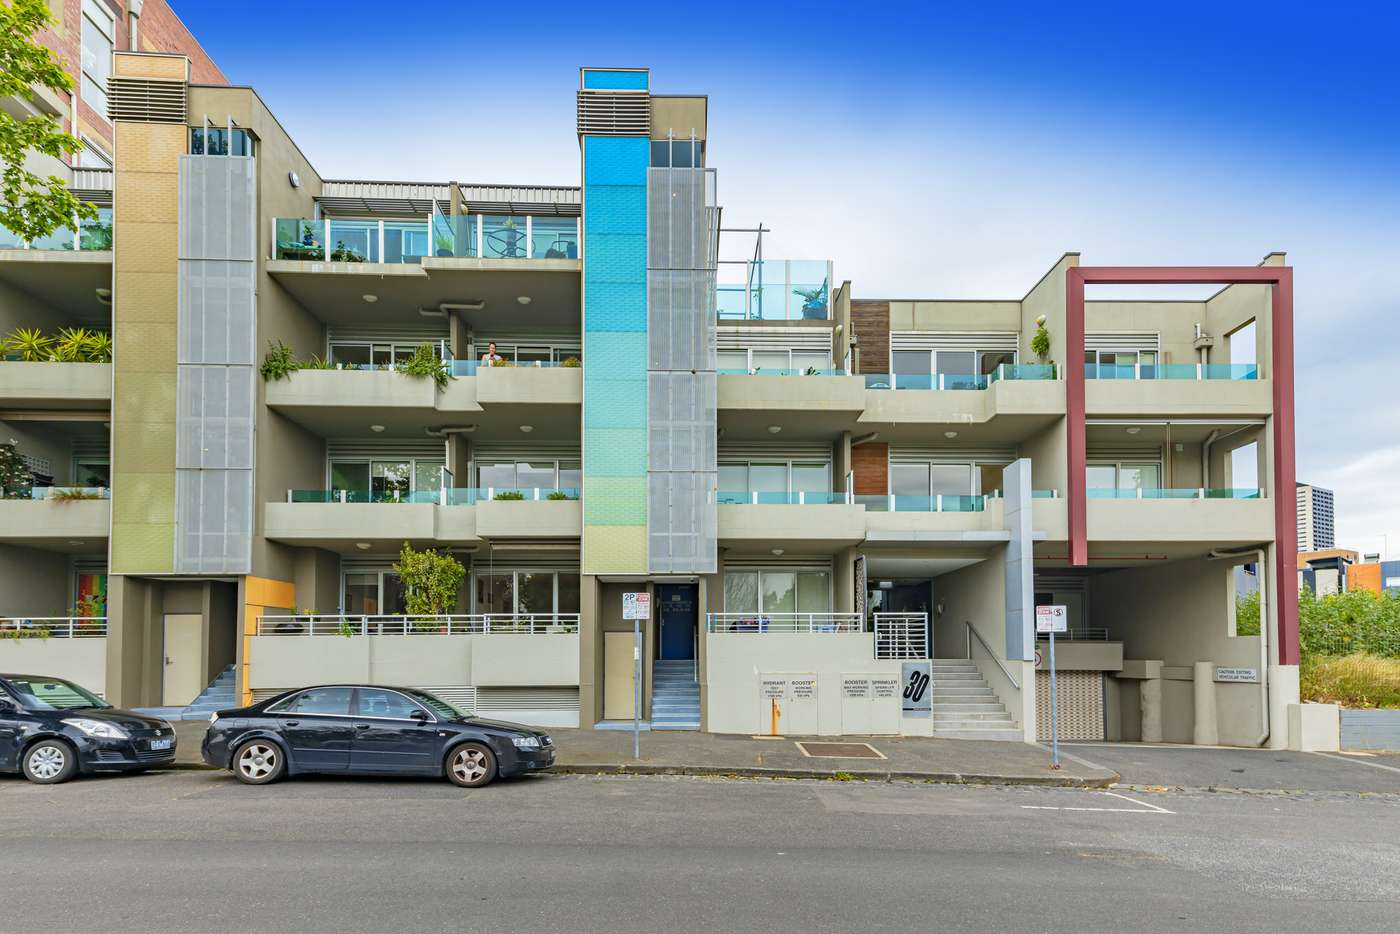 Main view of Homely apartment listing, 13/30 Chetwynd Street, West Melbourne VIC 3003